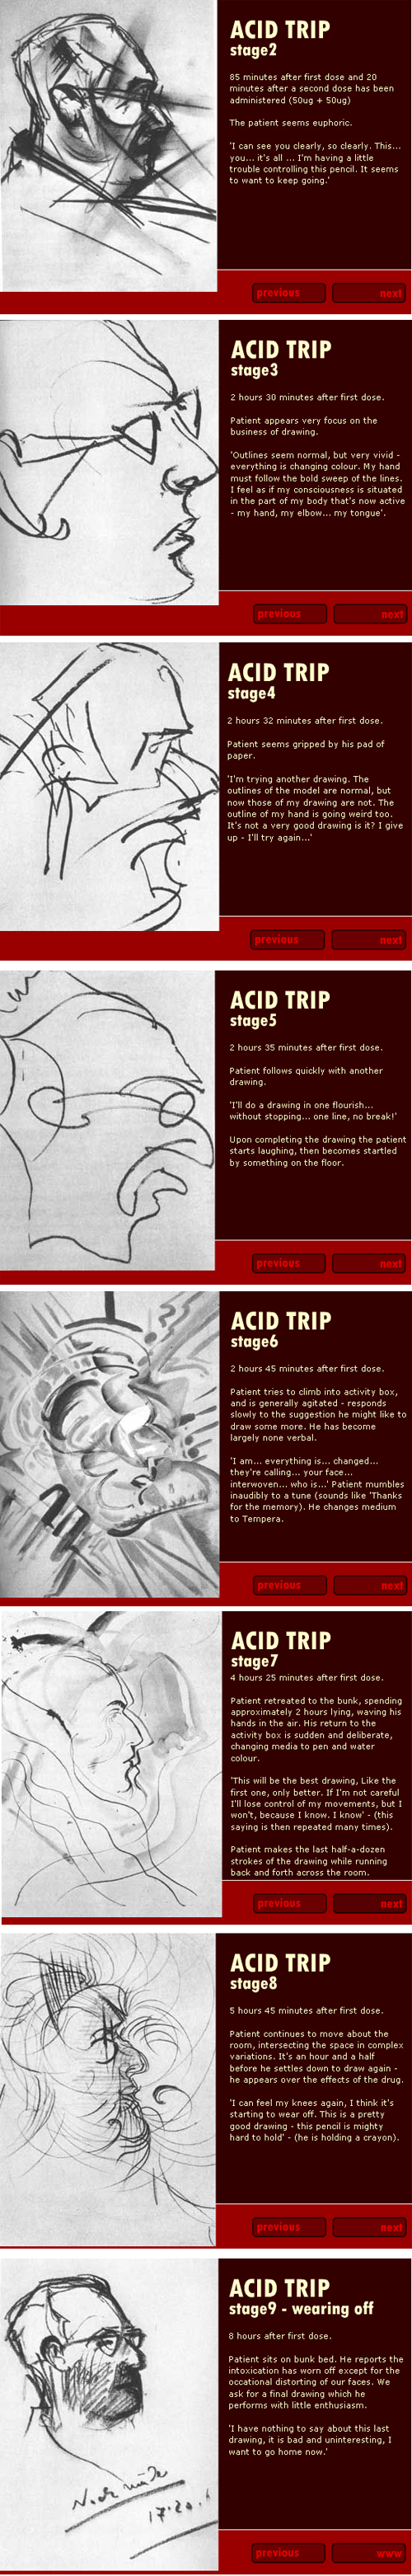 how to make acid drug video